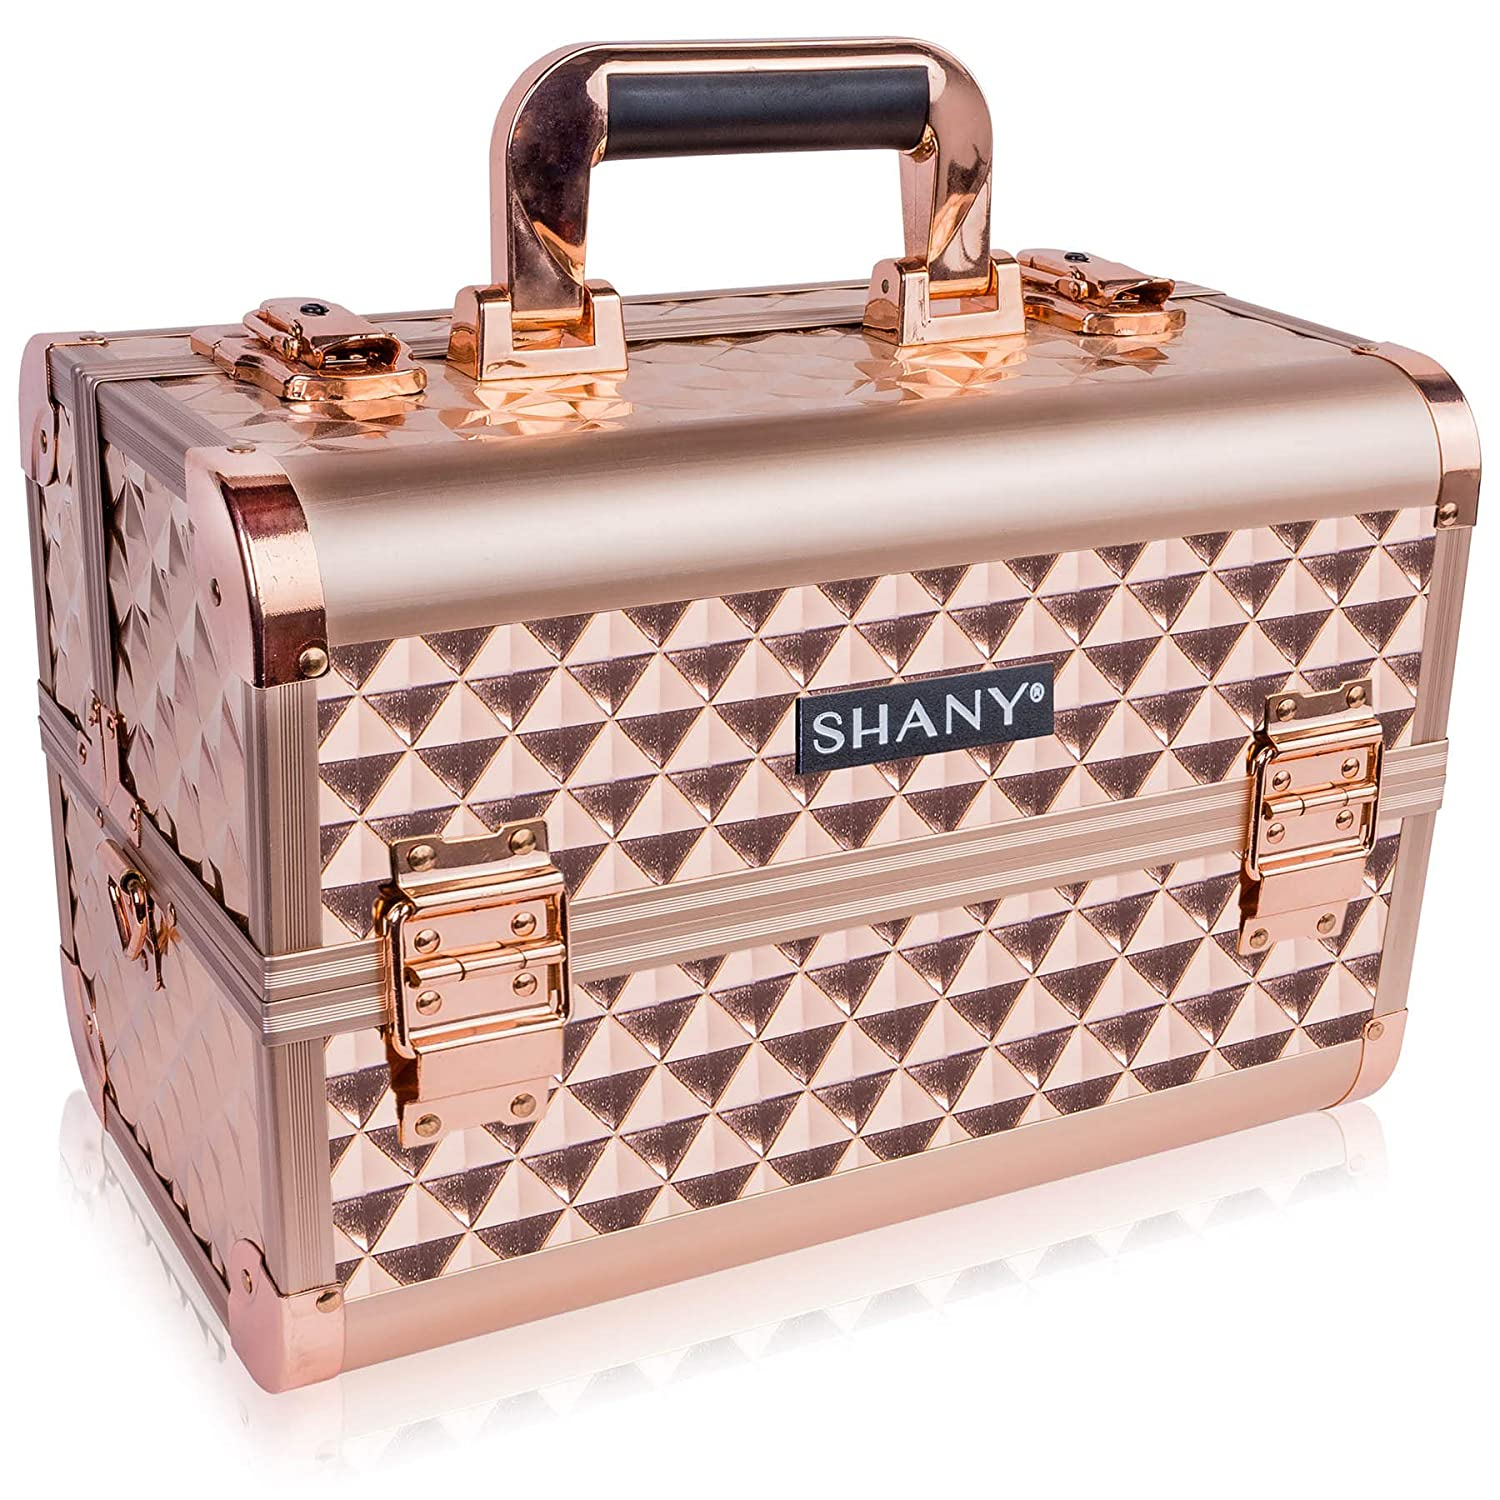 SHANY Premier Fantasy Collection Makeup Artists Cosmetics Train Case - ROSE GOLD